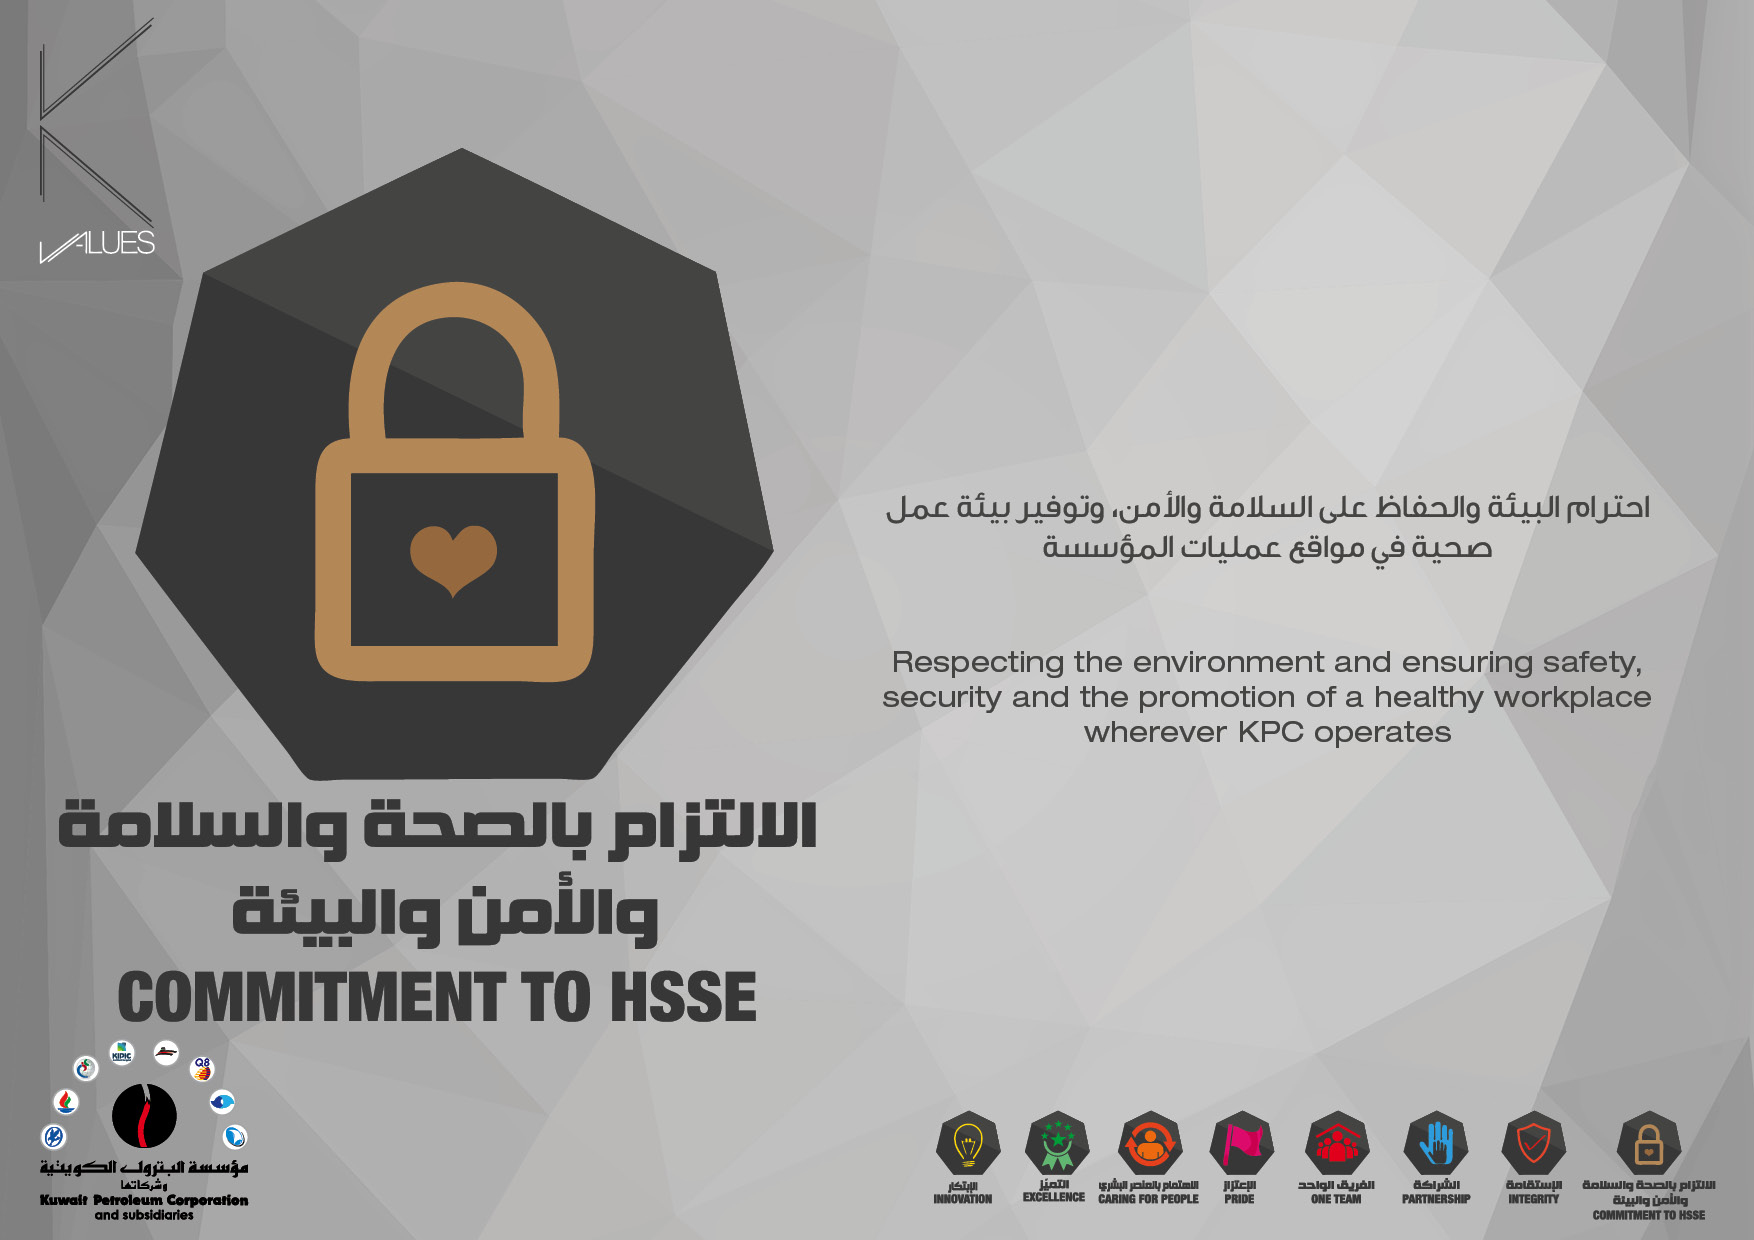 kpc corporate site our values commitment to hsse and society